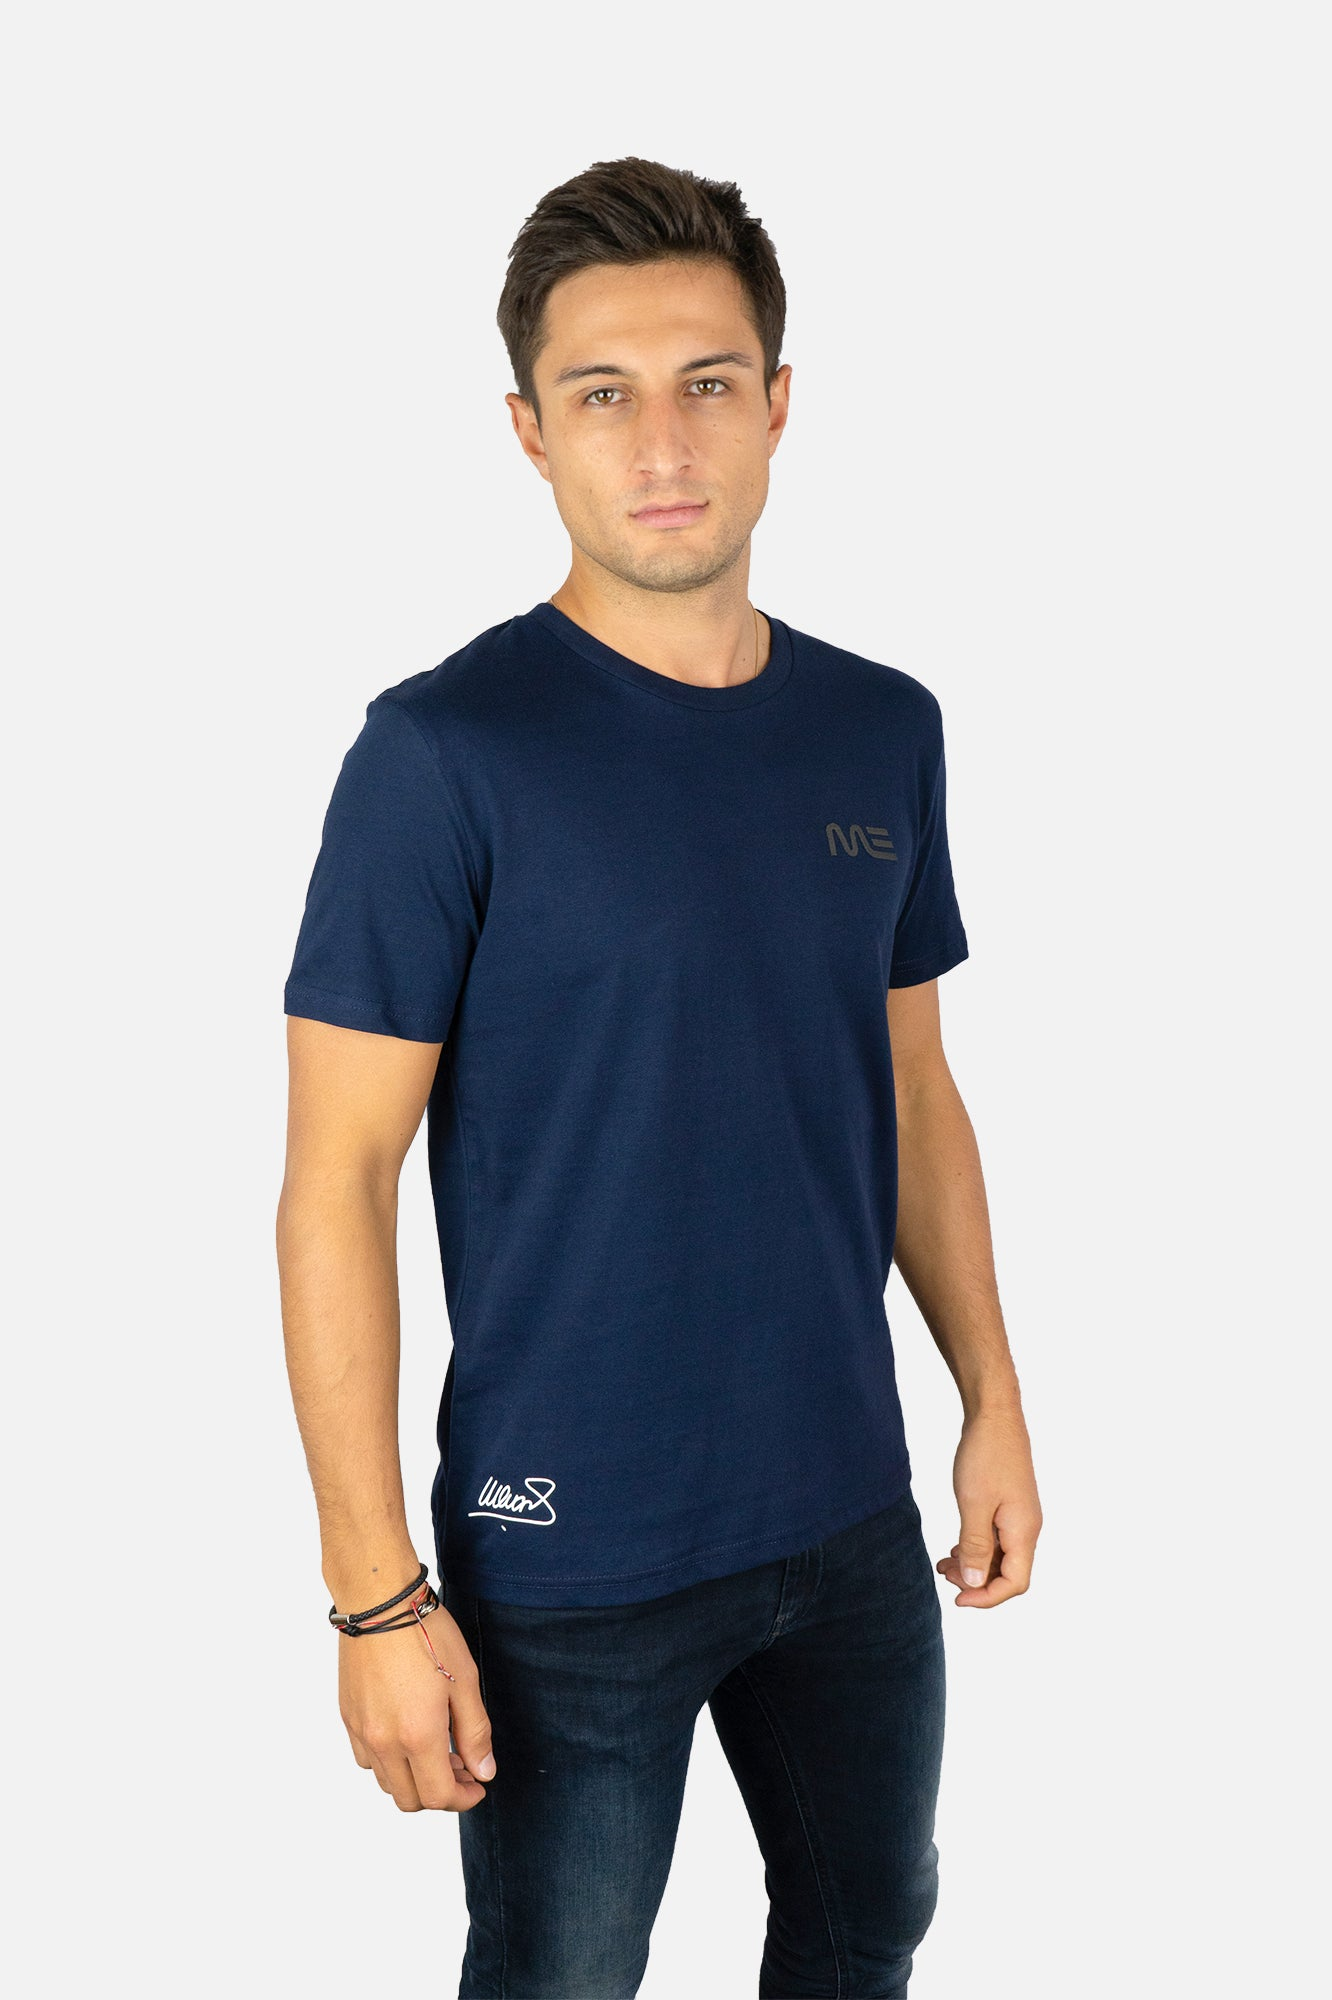 MITCH EVANS SIGNATURE NAVY T-SHIRT